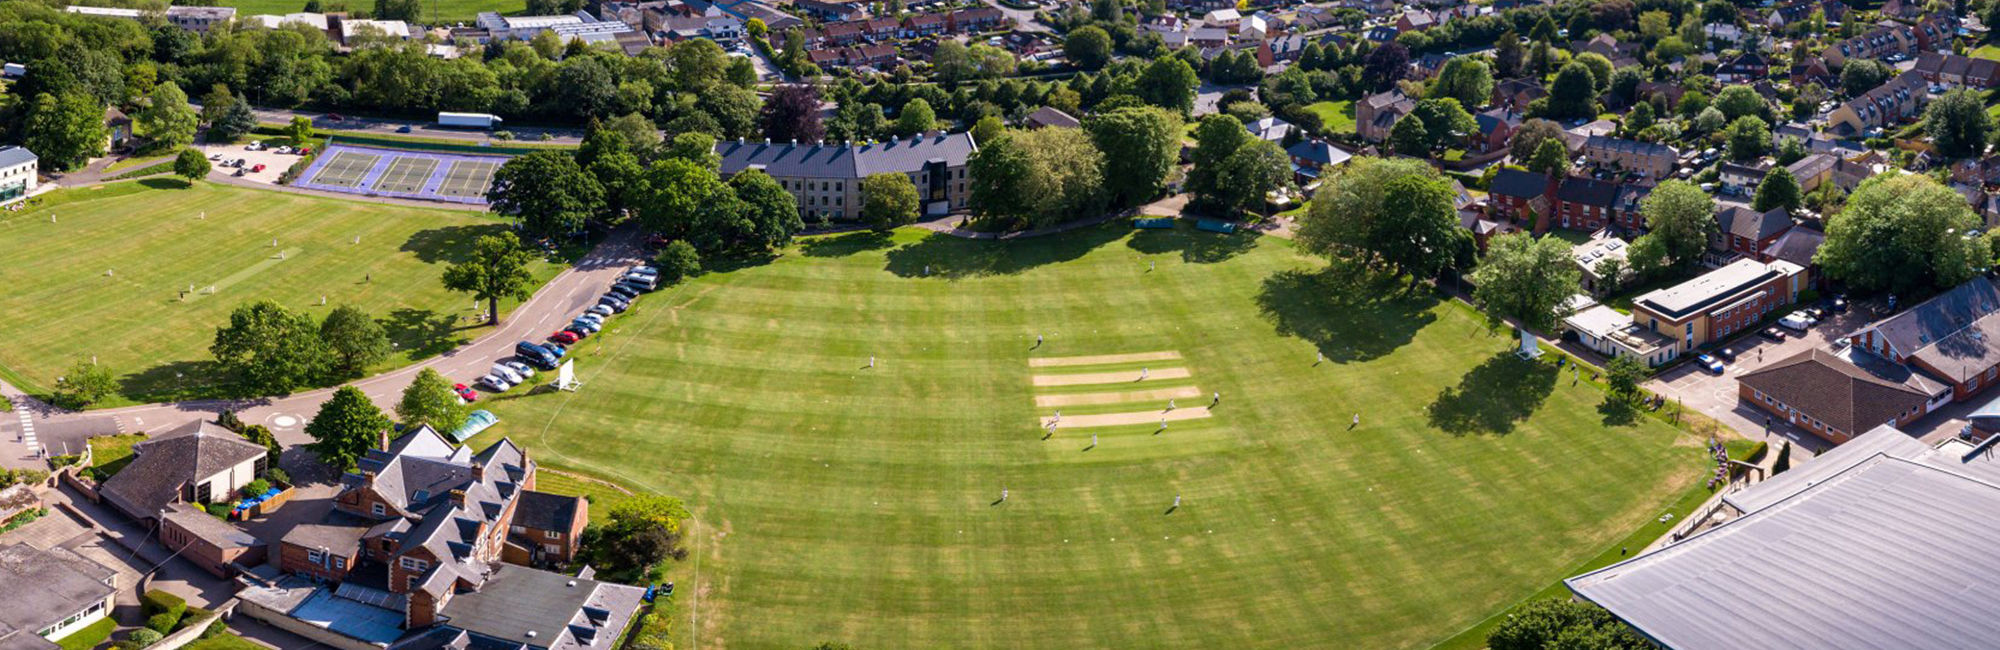 wycliffe college grounds seen from above